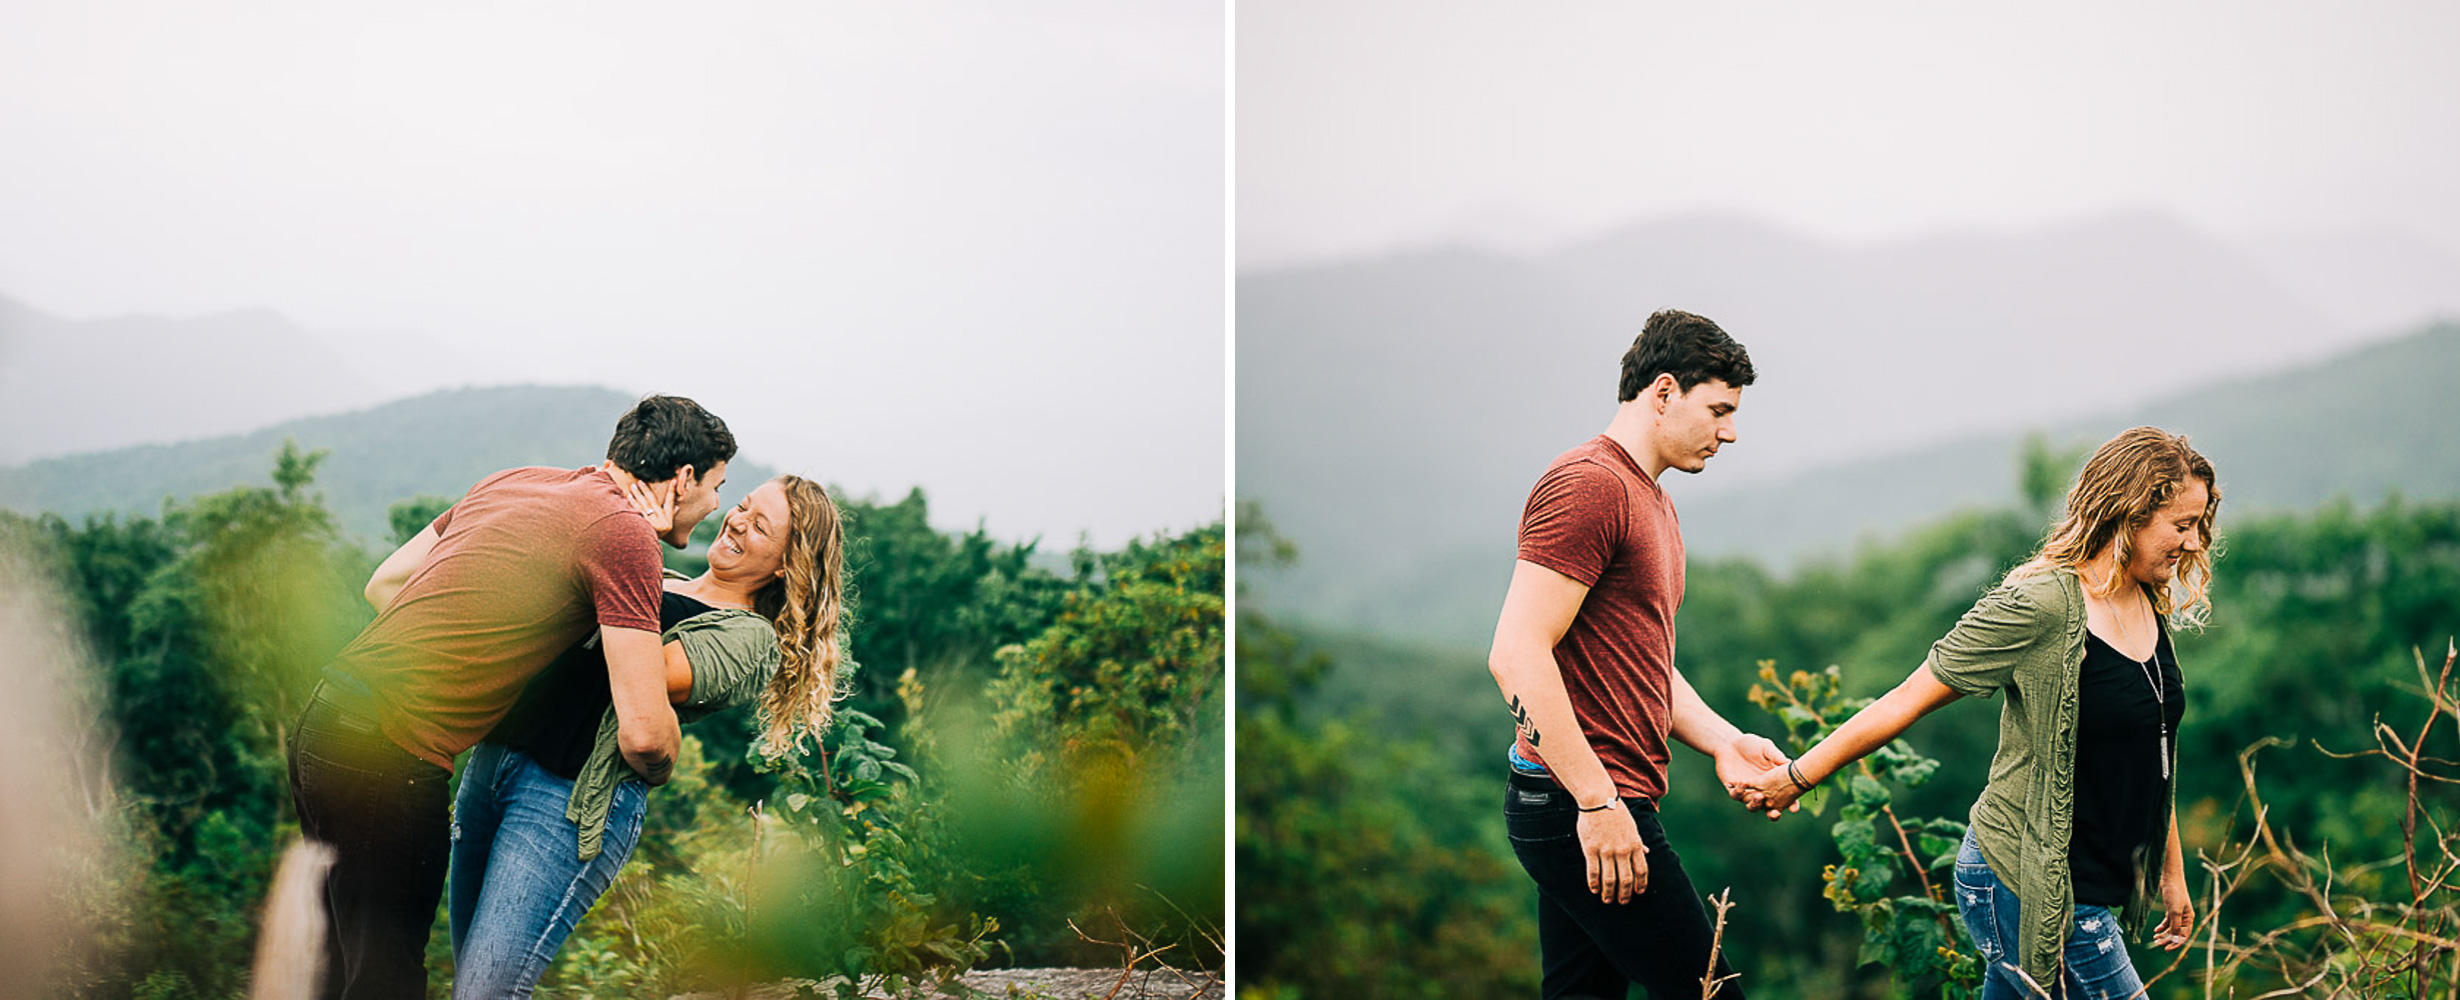 Mountain Engagement, Summer Engaement, Engaged, Engaement Portriats, Engagement Pictures, 13.jpg